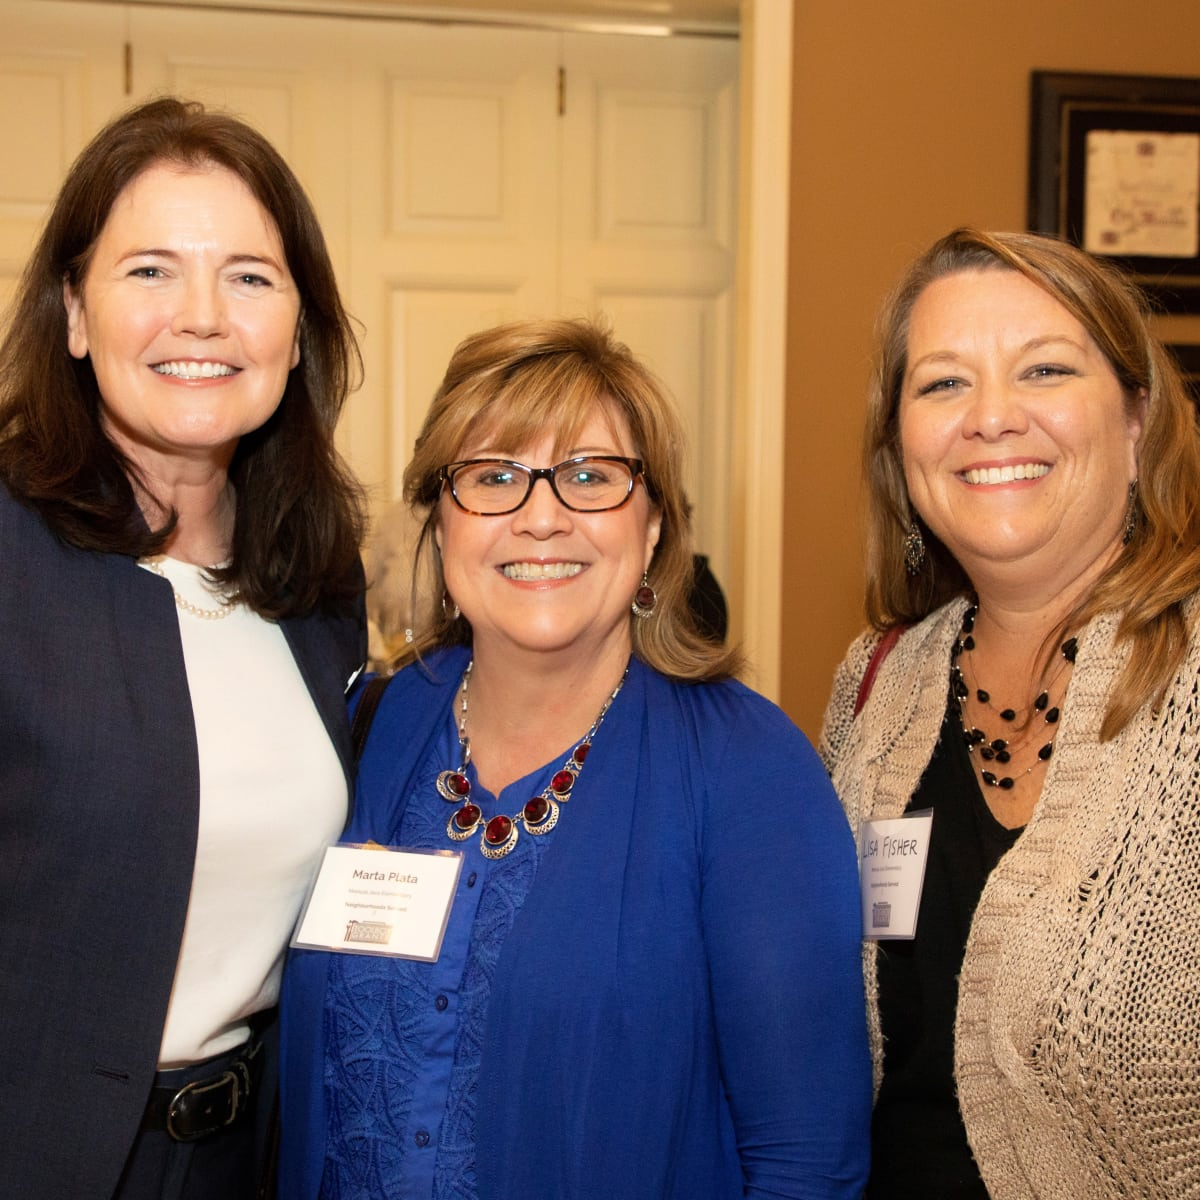 North Texas Community Foundation, Rose Bradshaw, Marta Plata, Lisa Fischer